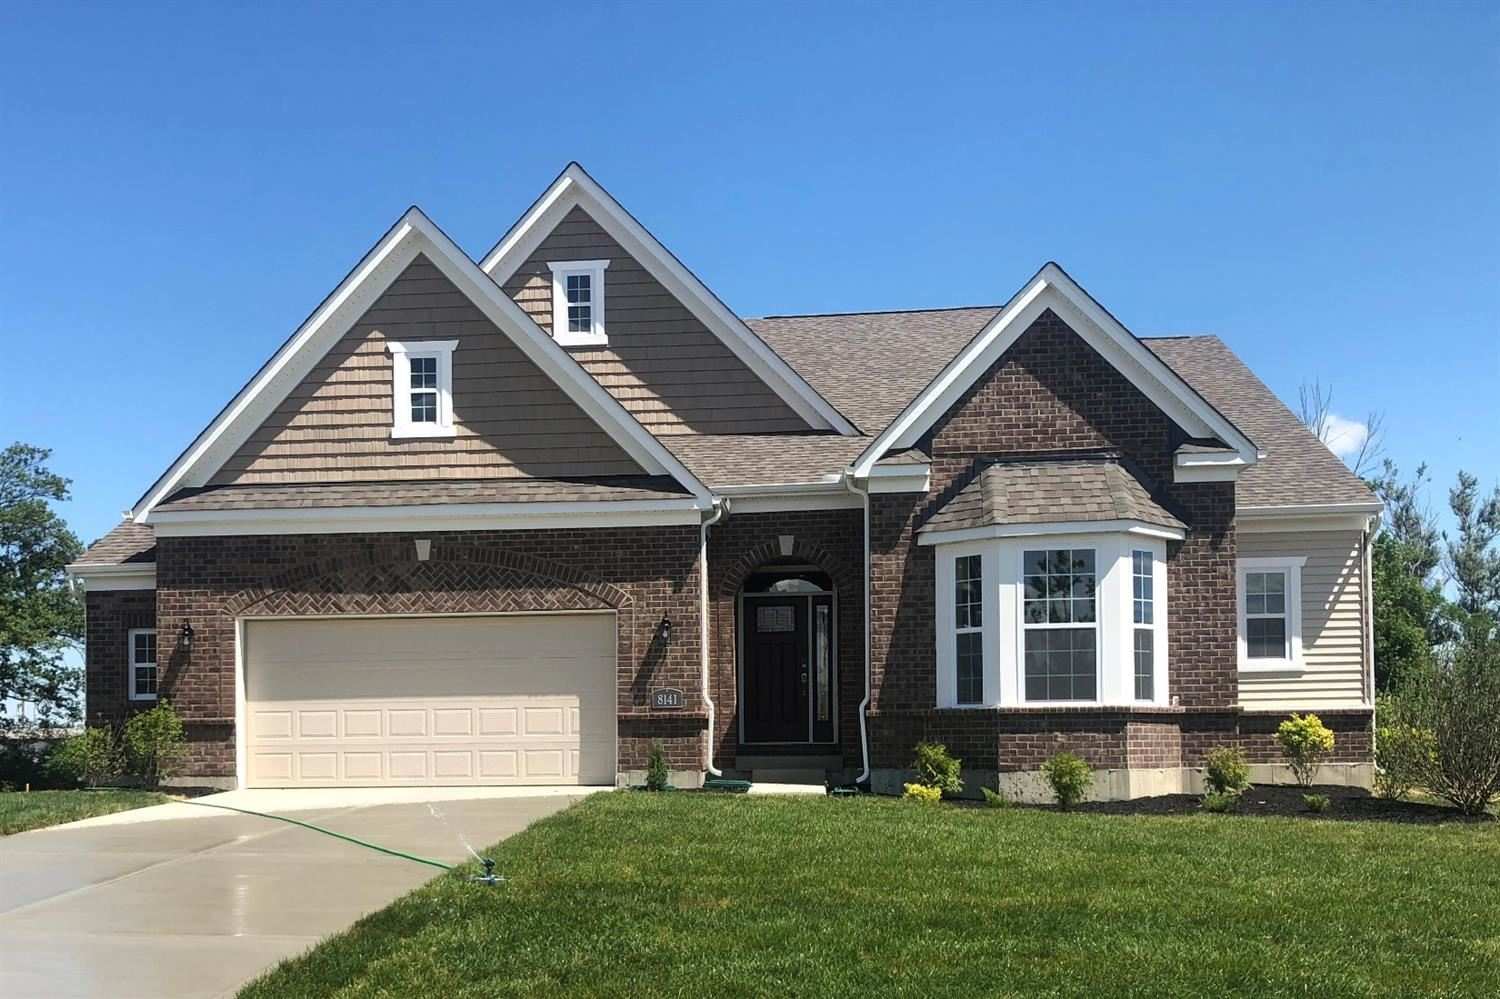 8141 Taffy Drive #40, West Chester, OH 45069 - #: 1666261